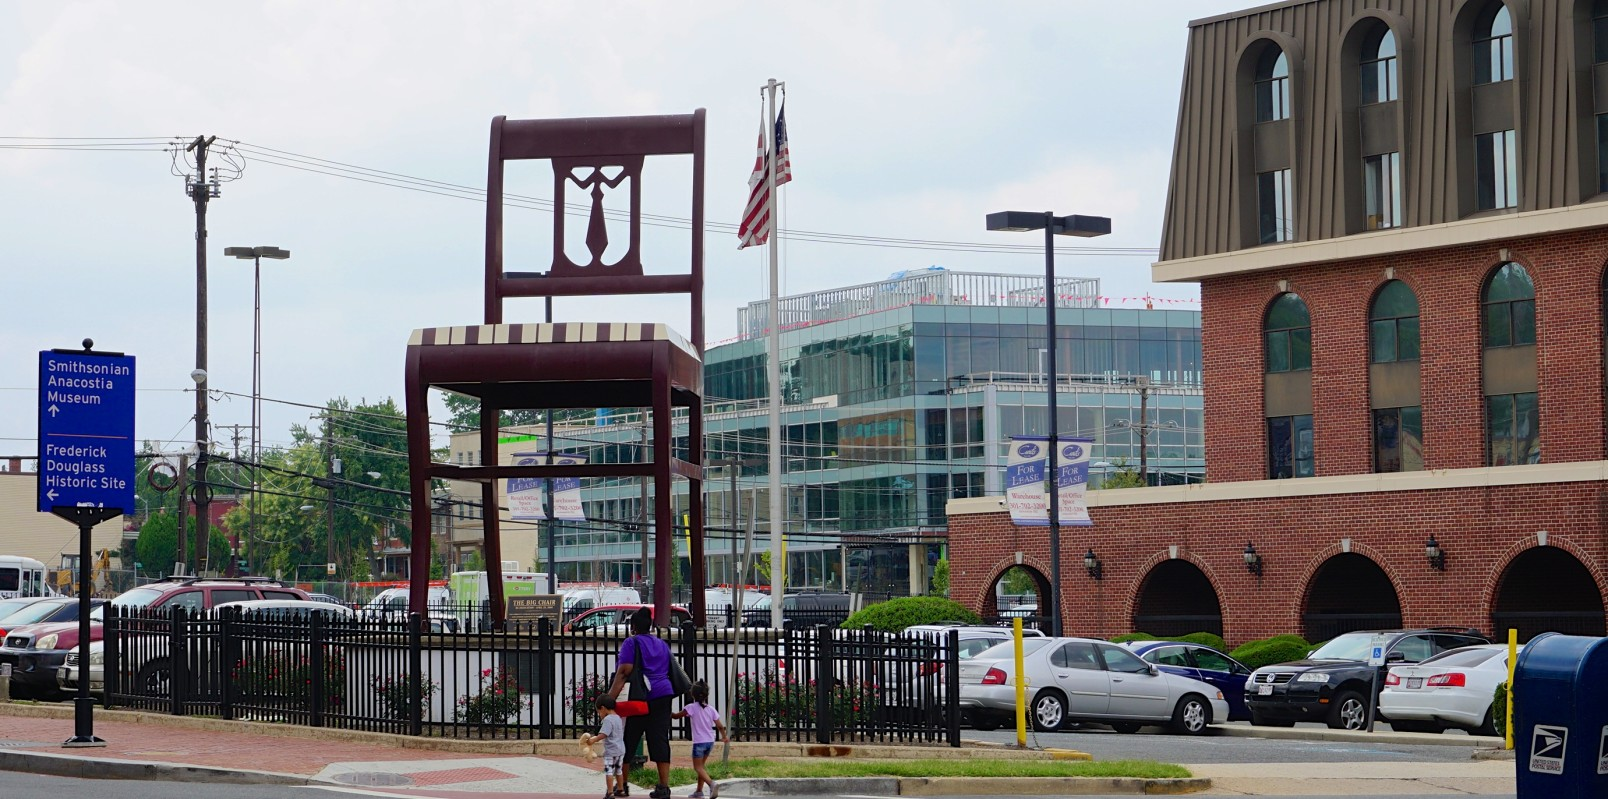 The Big Chair in Anacostia